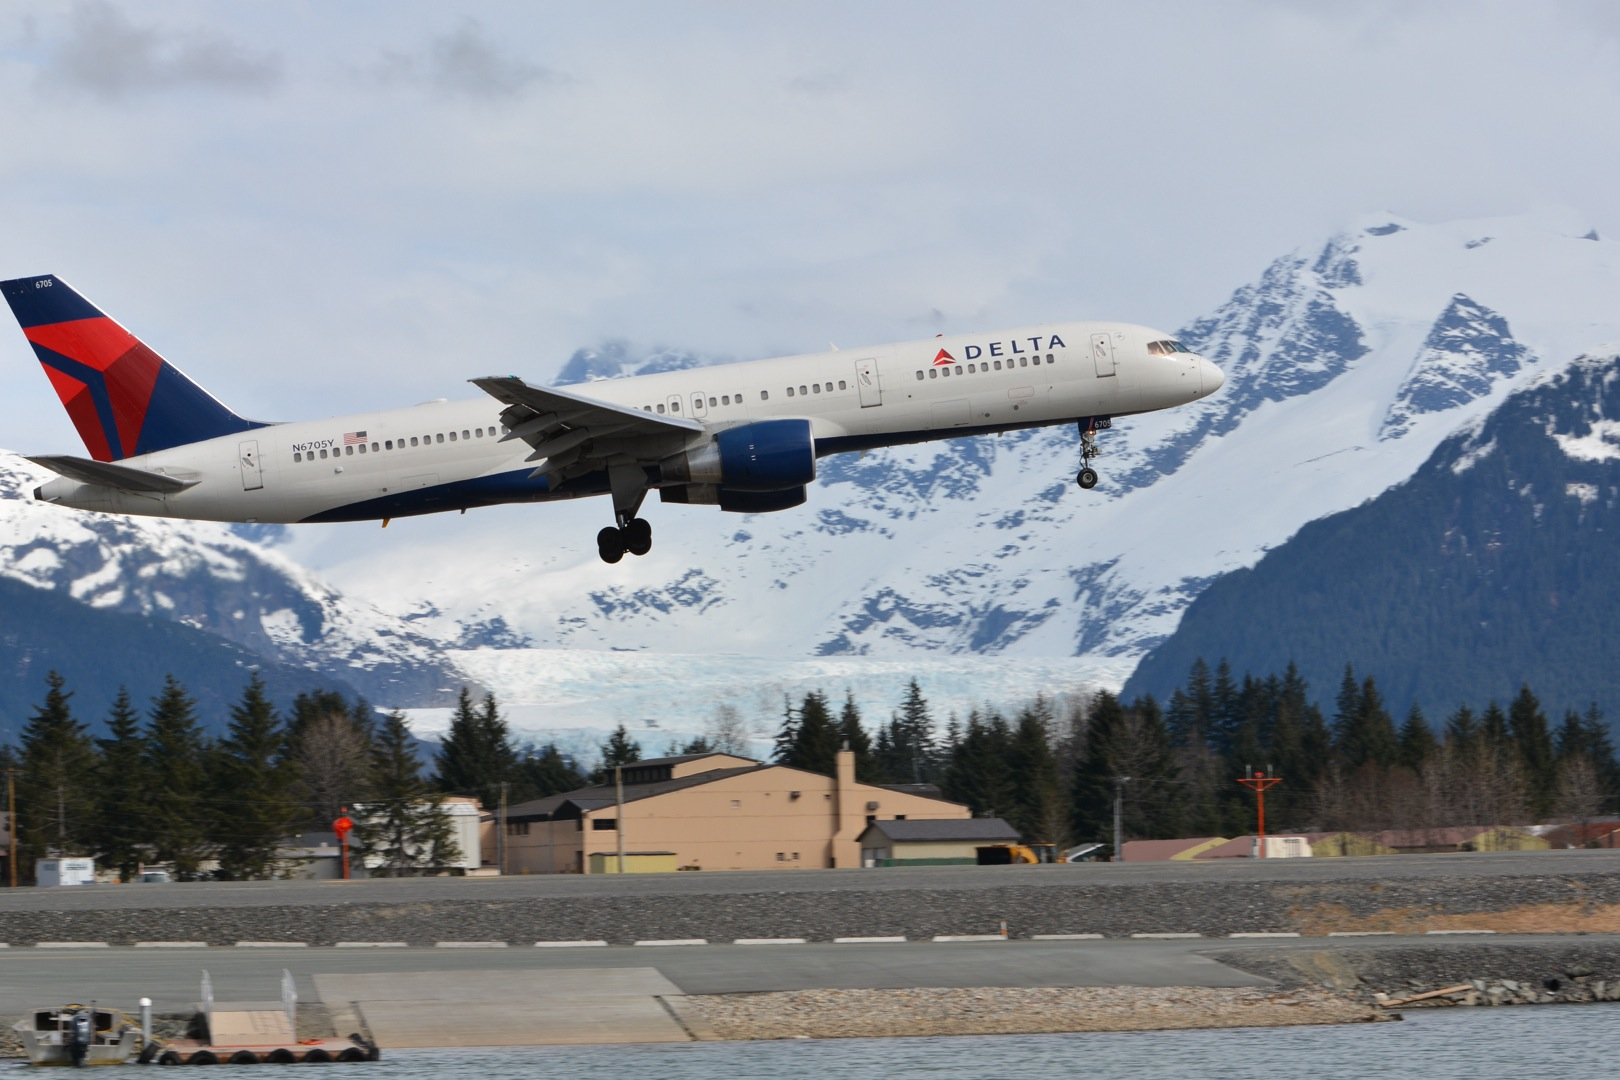 Delta vs alaska dueling airlines benefit juneau - Interior community health center fairbanks ...